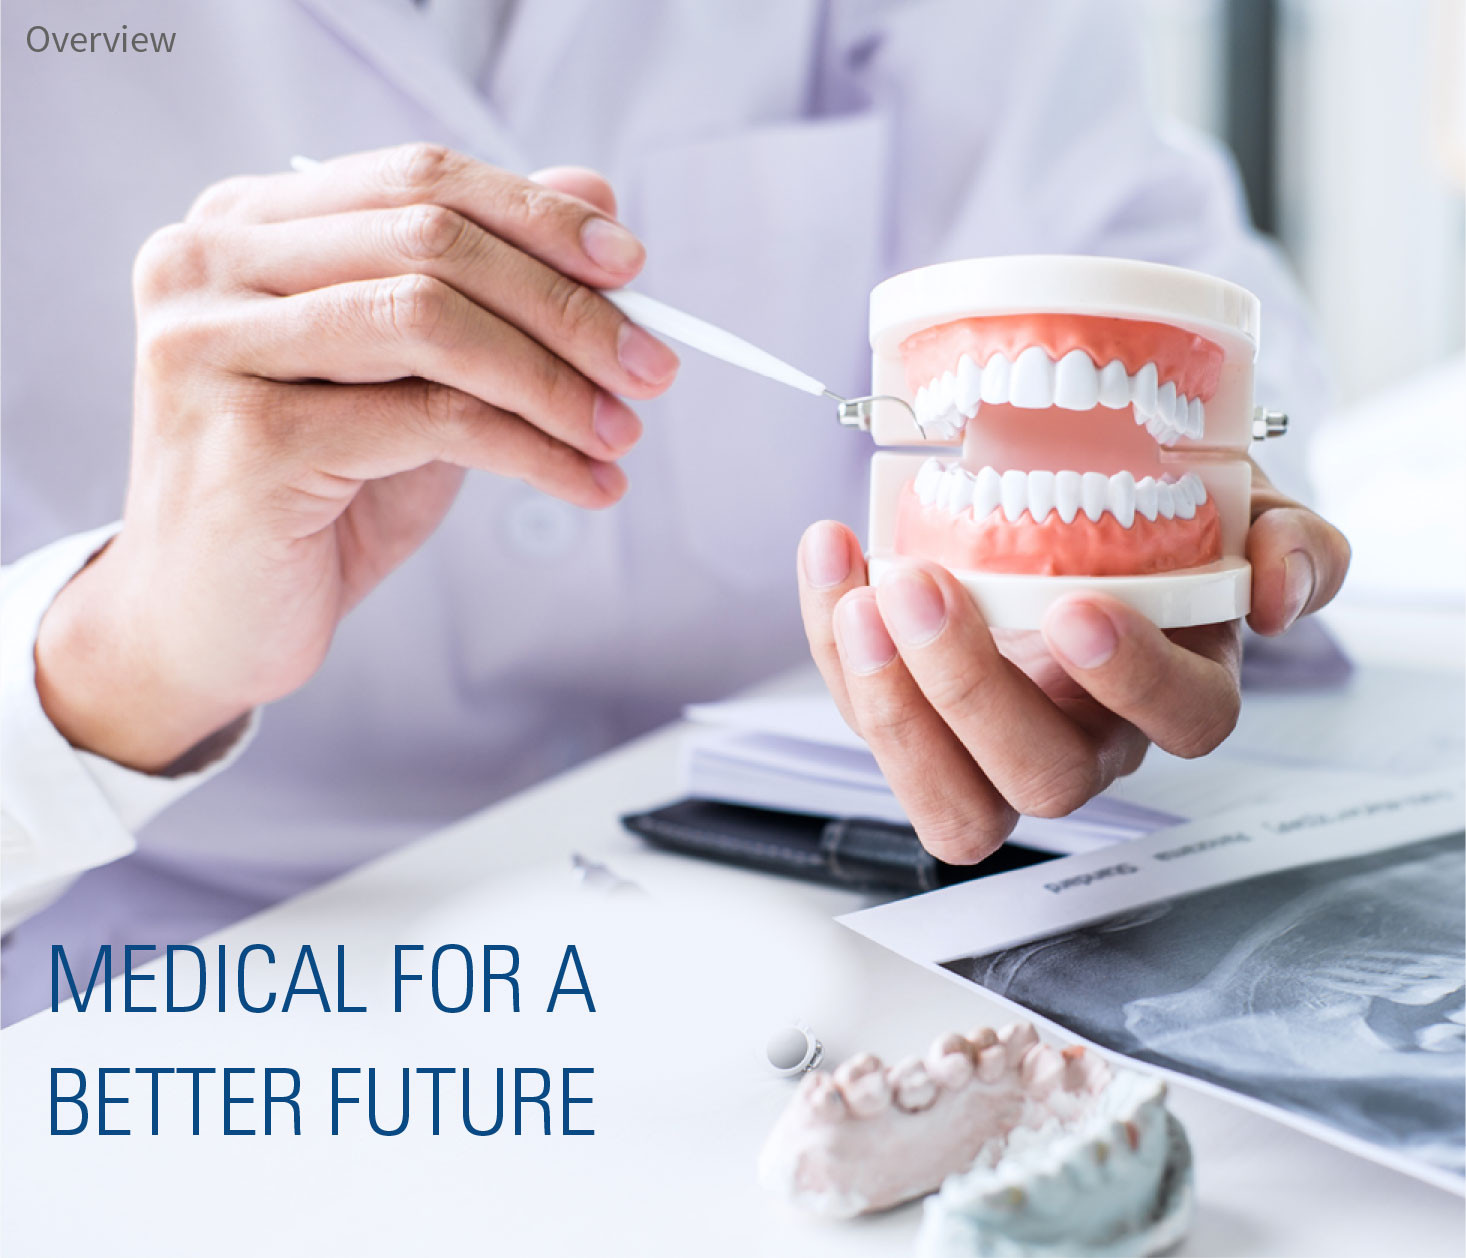 medical for a better future